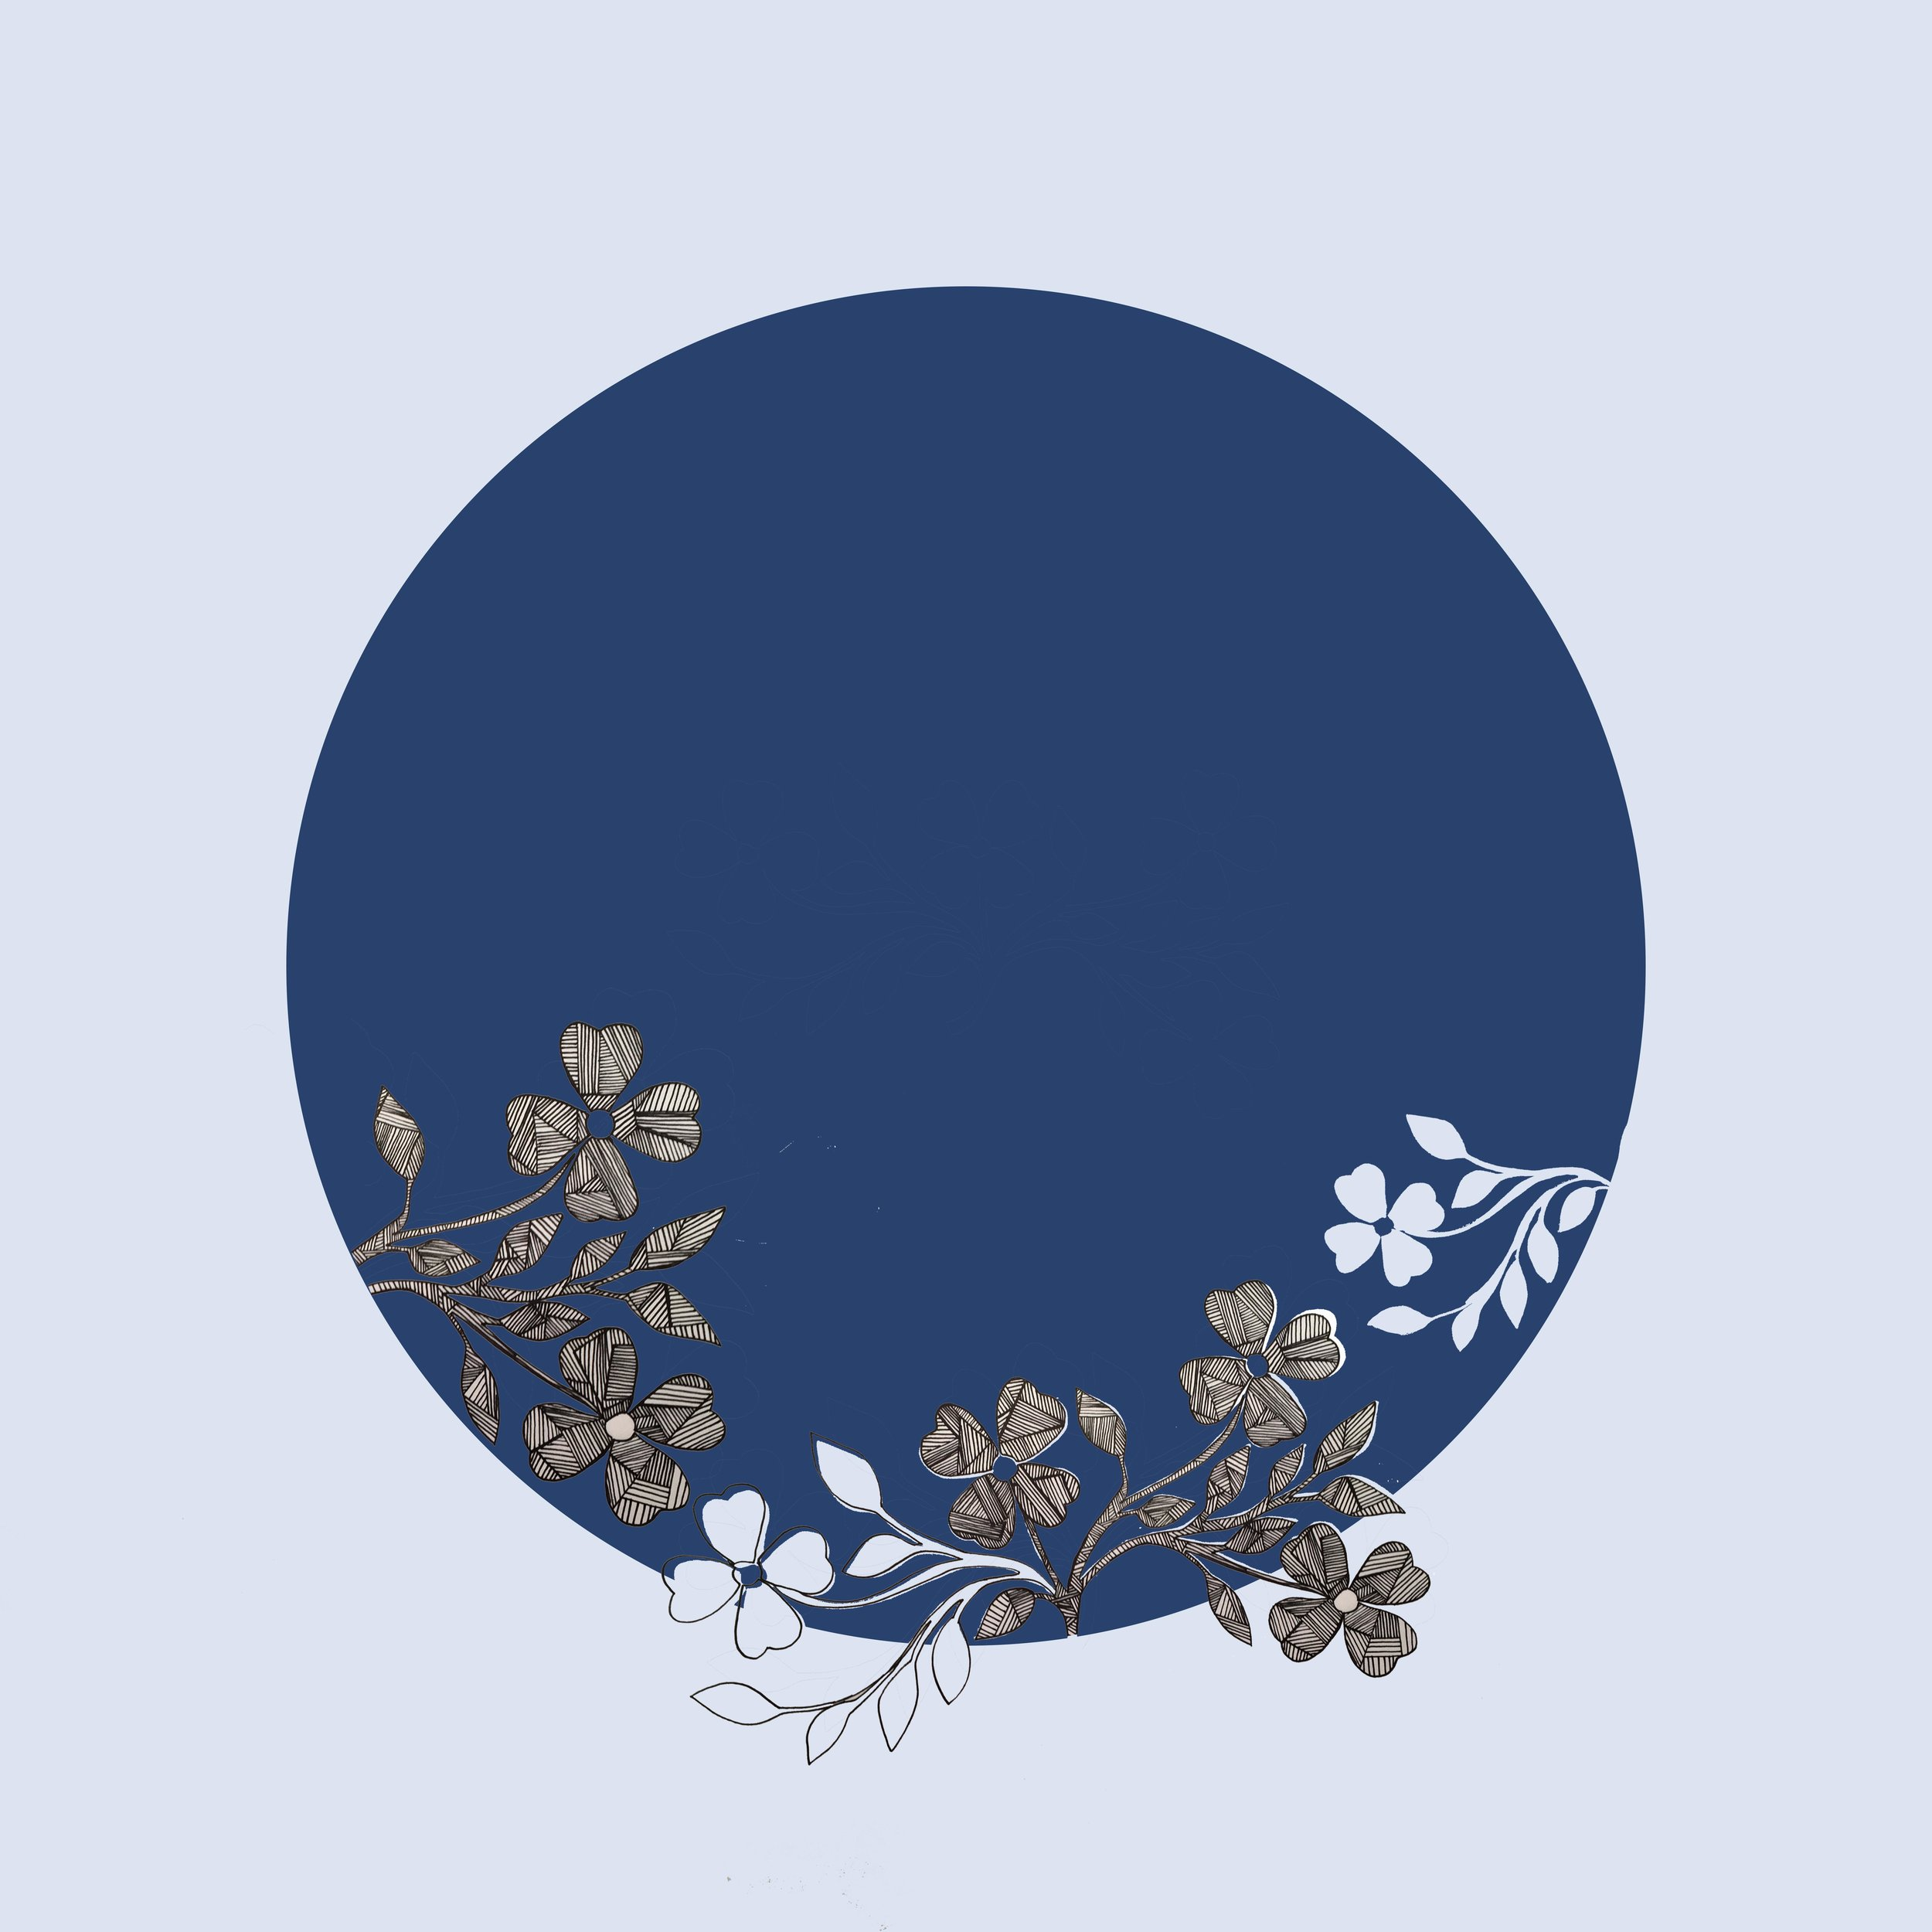 Cyano with Dogwood and linedrawing.jpg